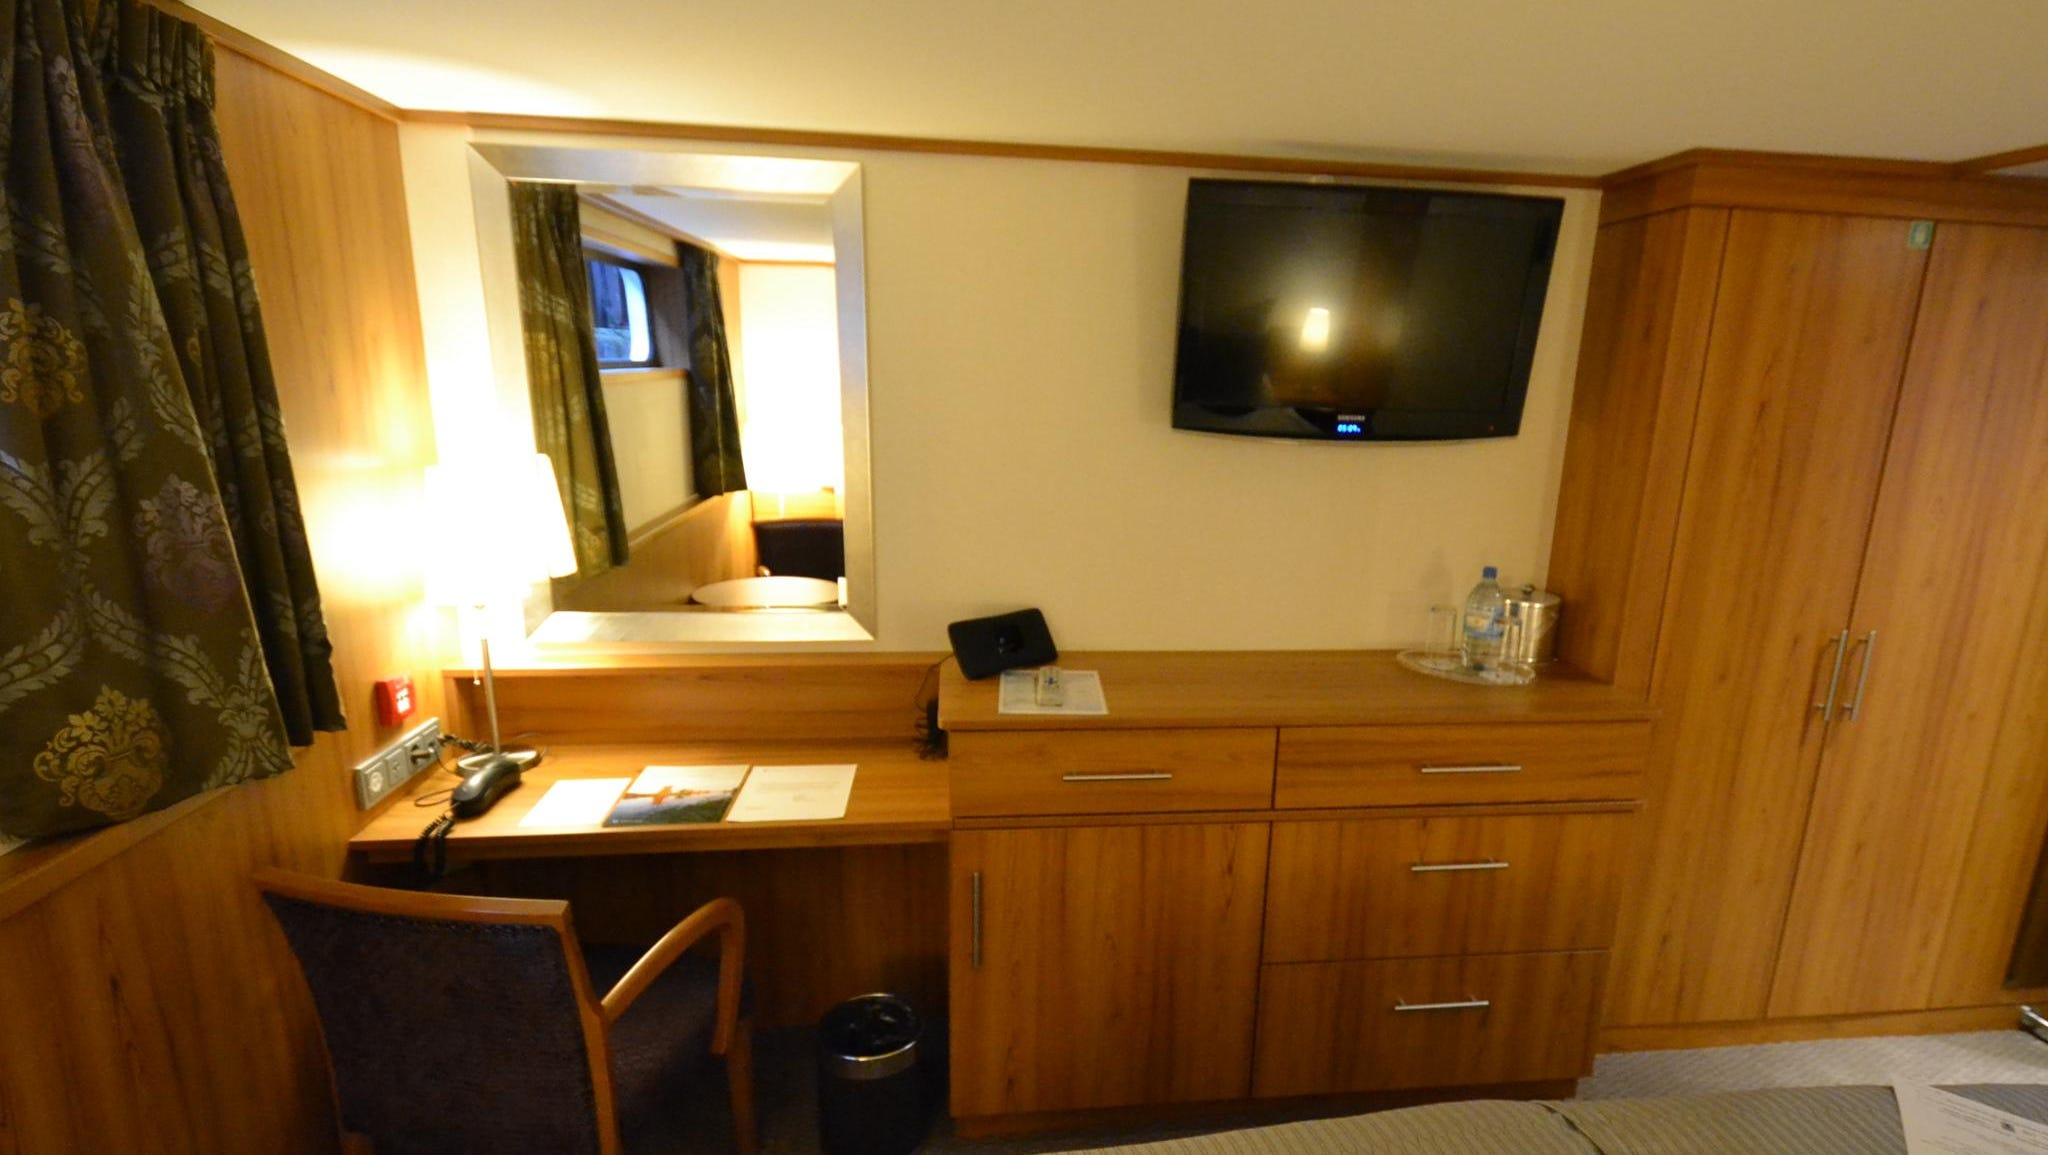 Standard cabins have desk areas, a chair, and flat-screen TVs, among other amenities.